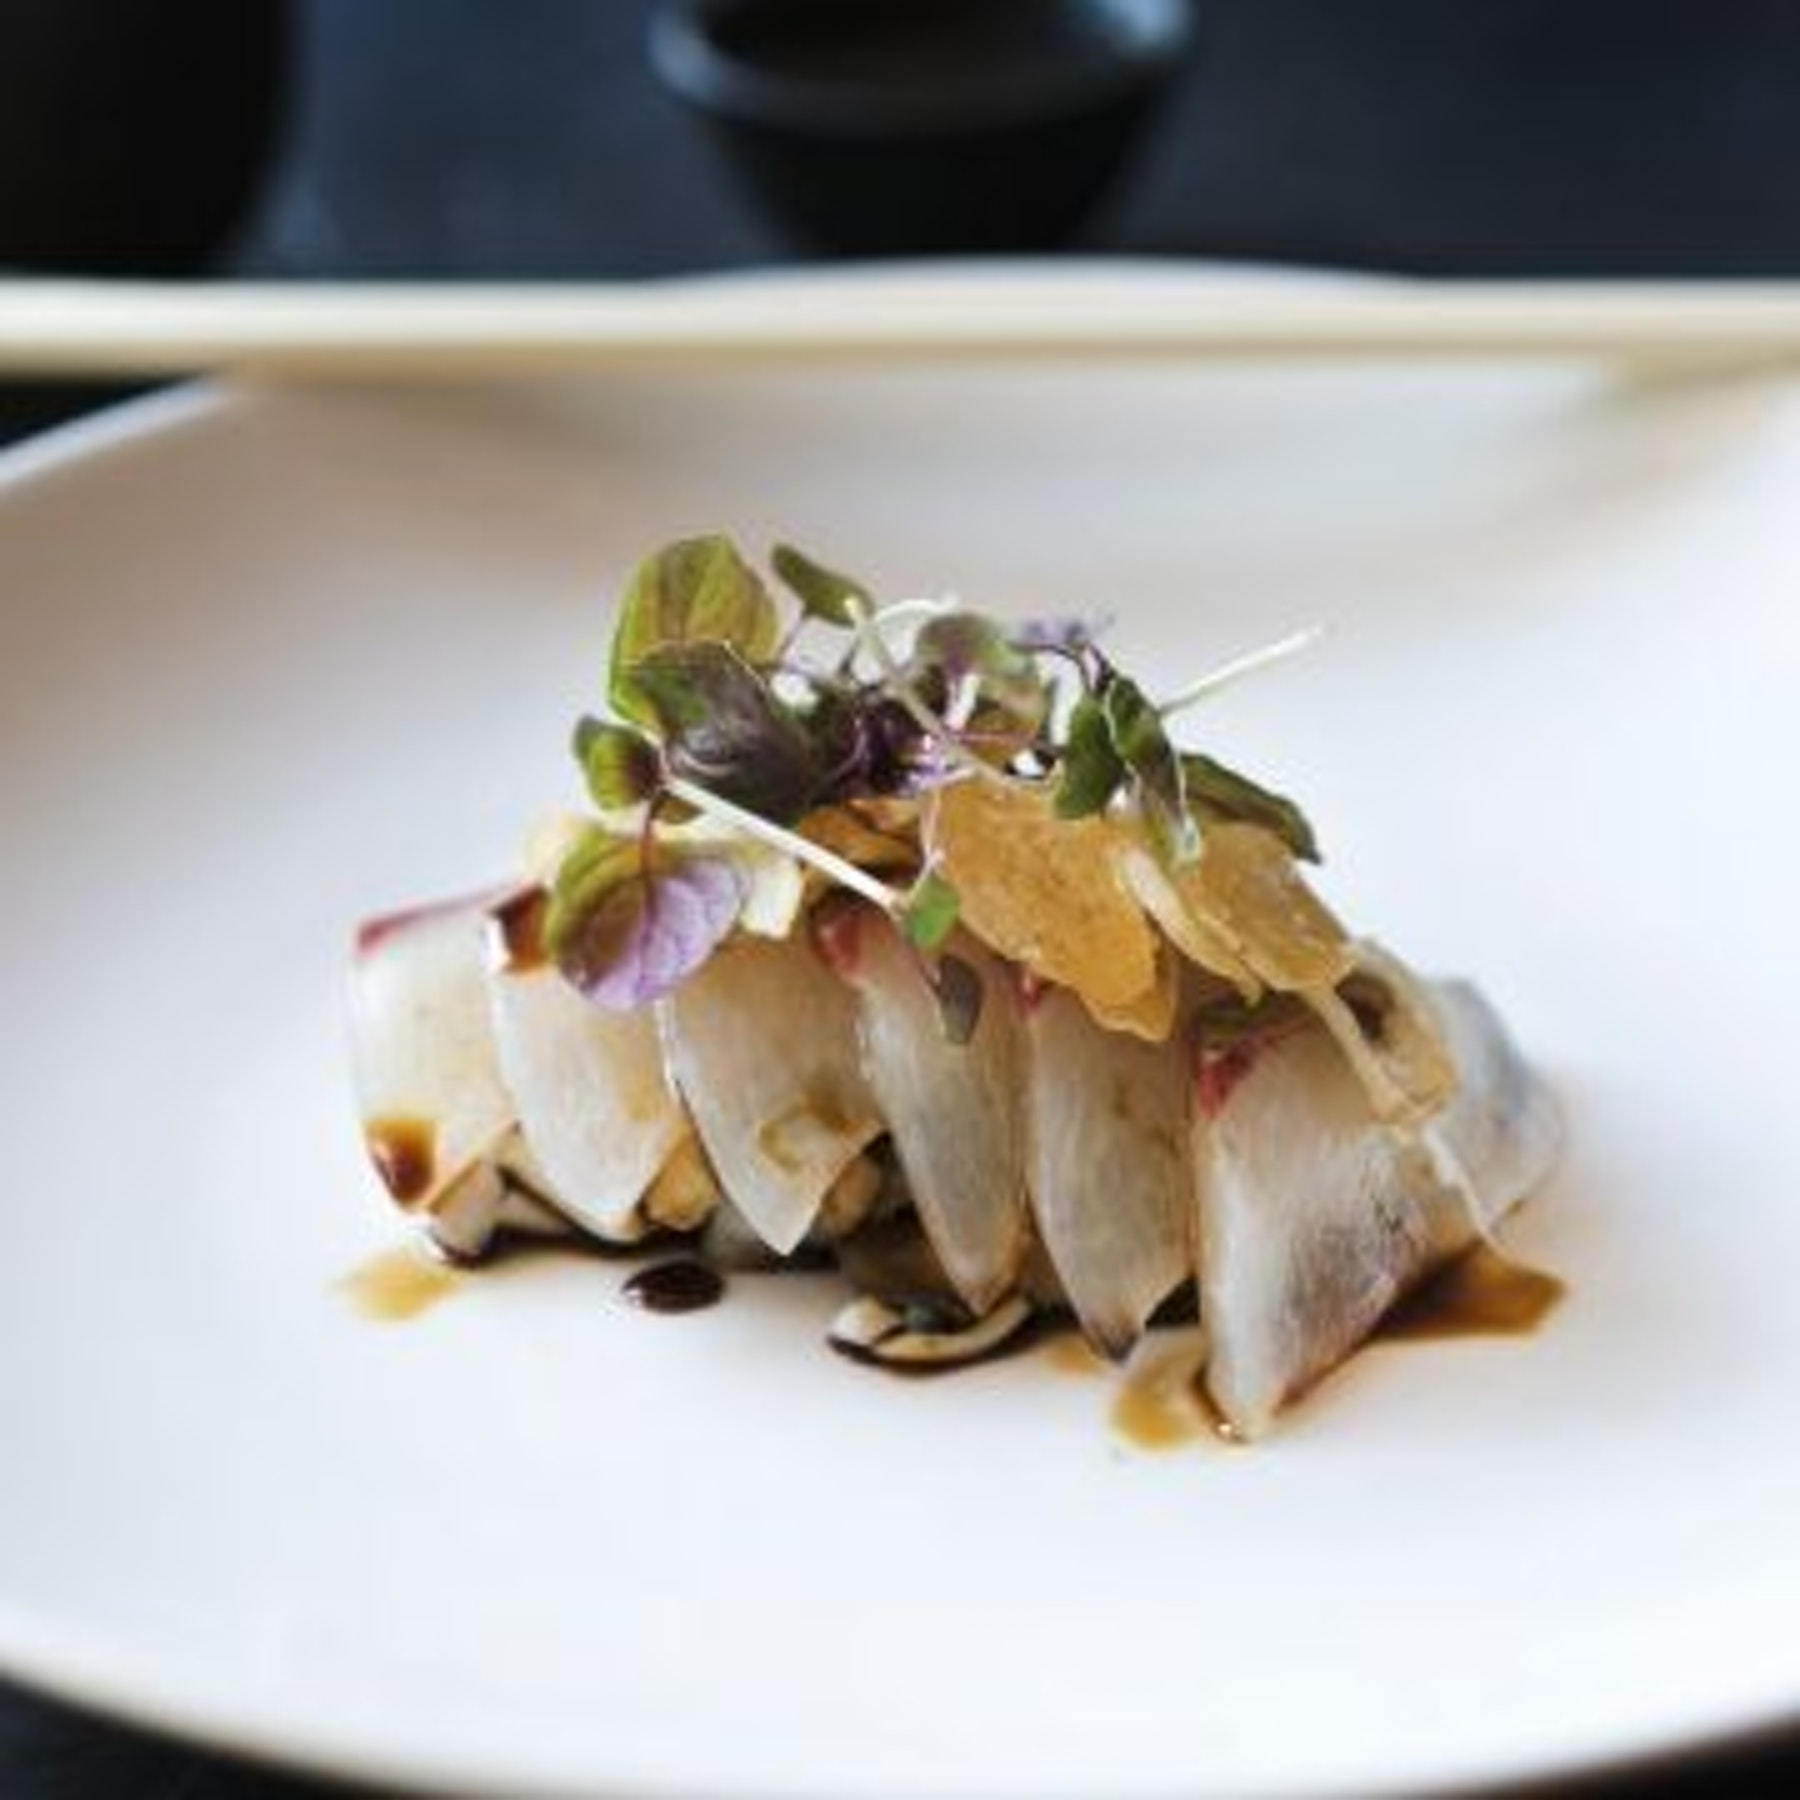 Uchi Dallas in Beyond Dallas